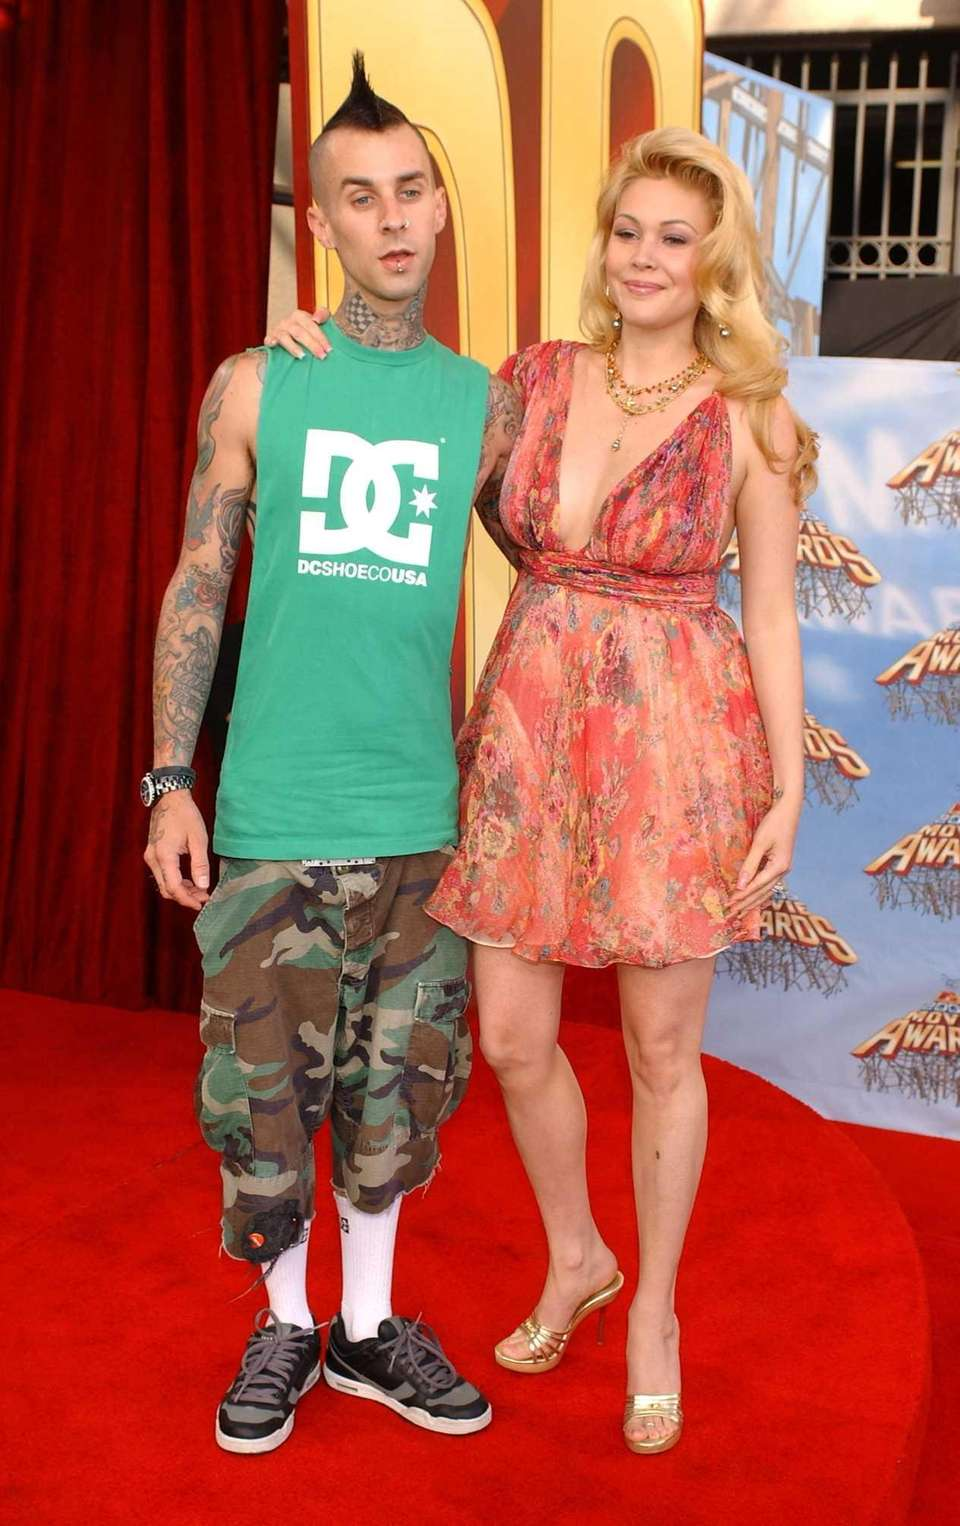 Blink 182 drummer Travis Barker and former Miss